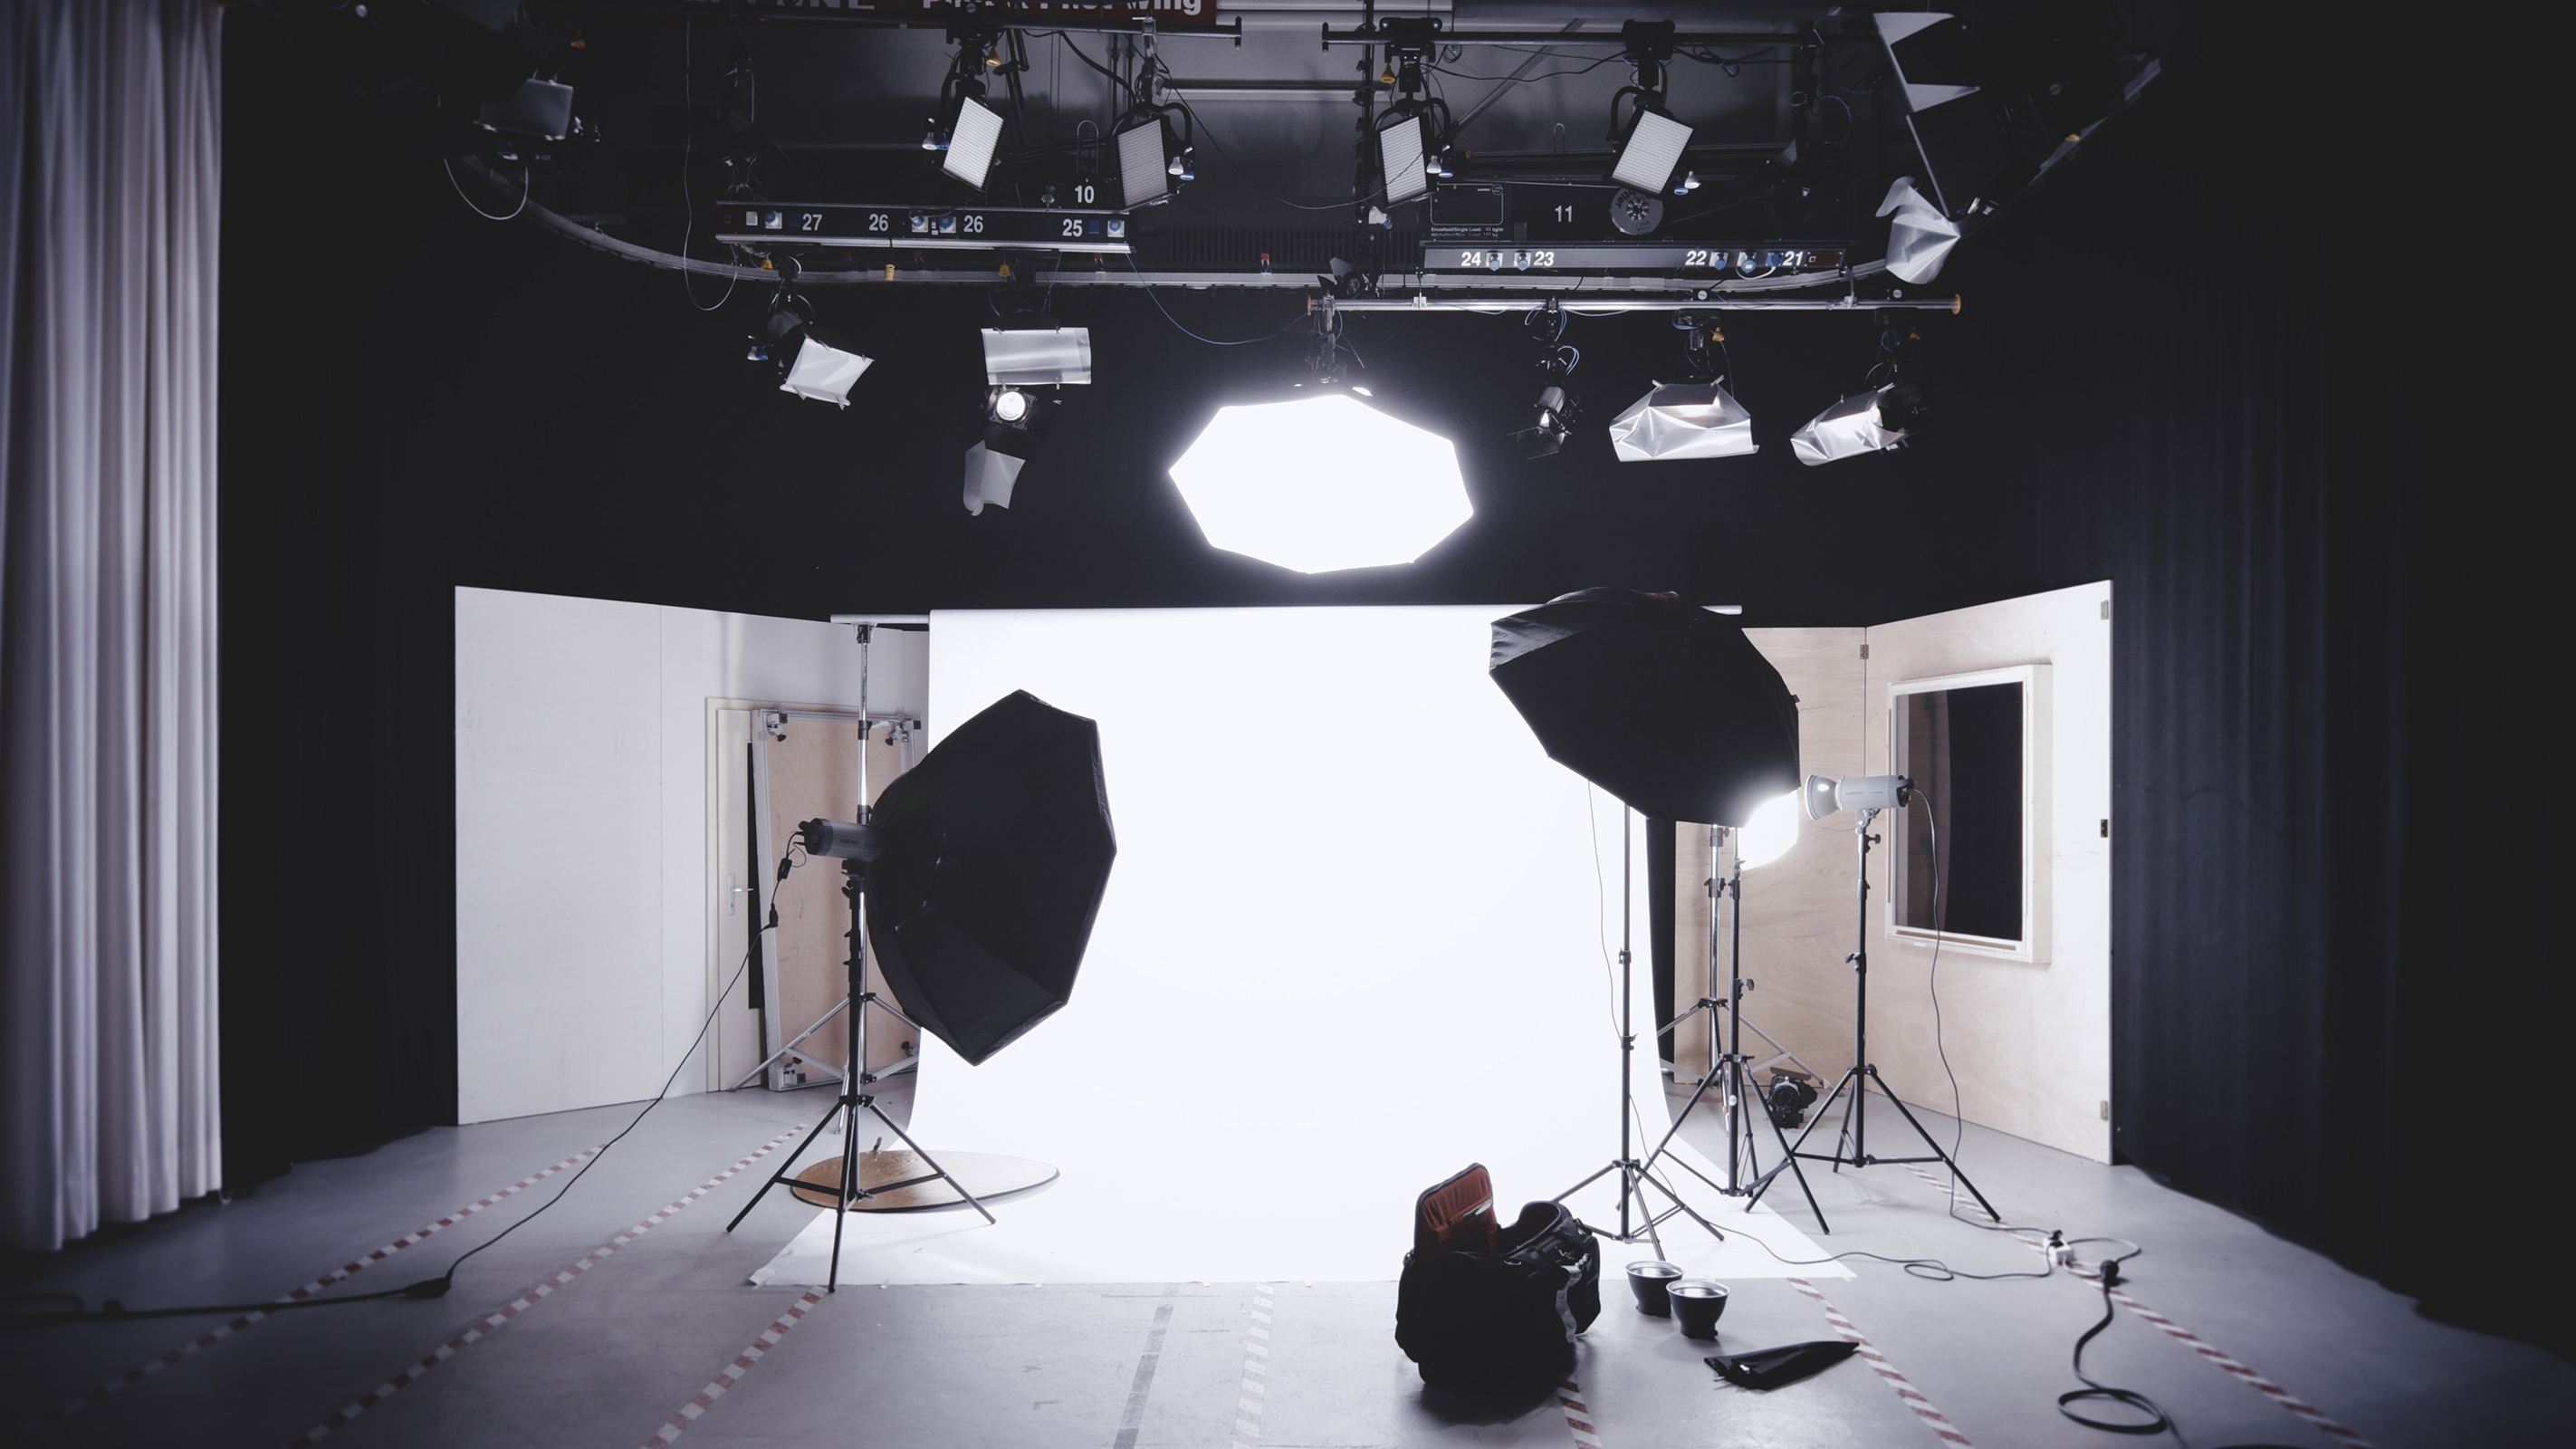 Bright softbox lights aimed at a white backdrop